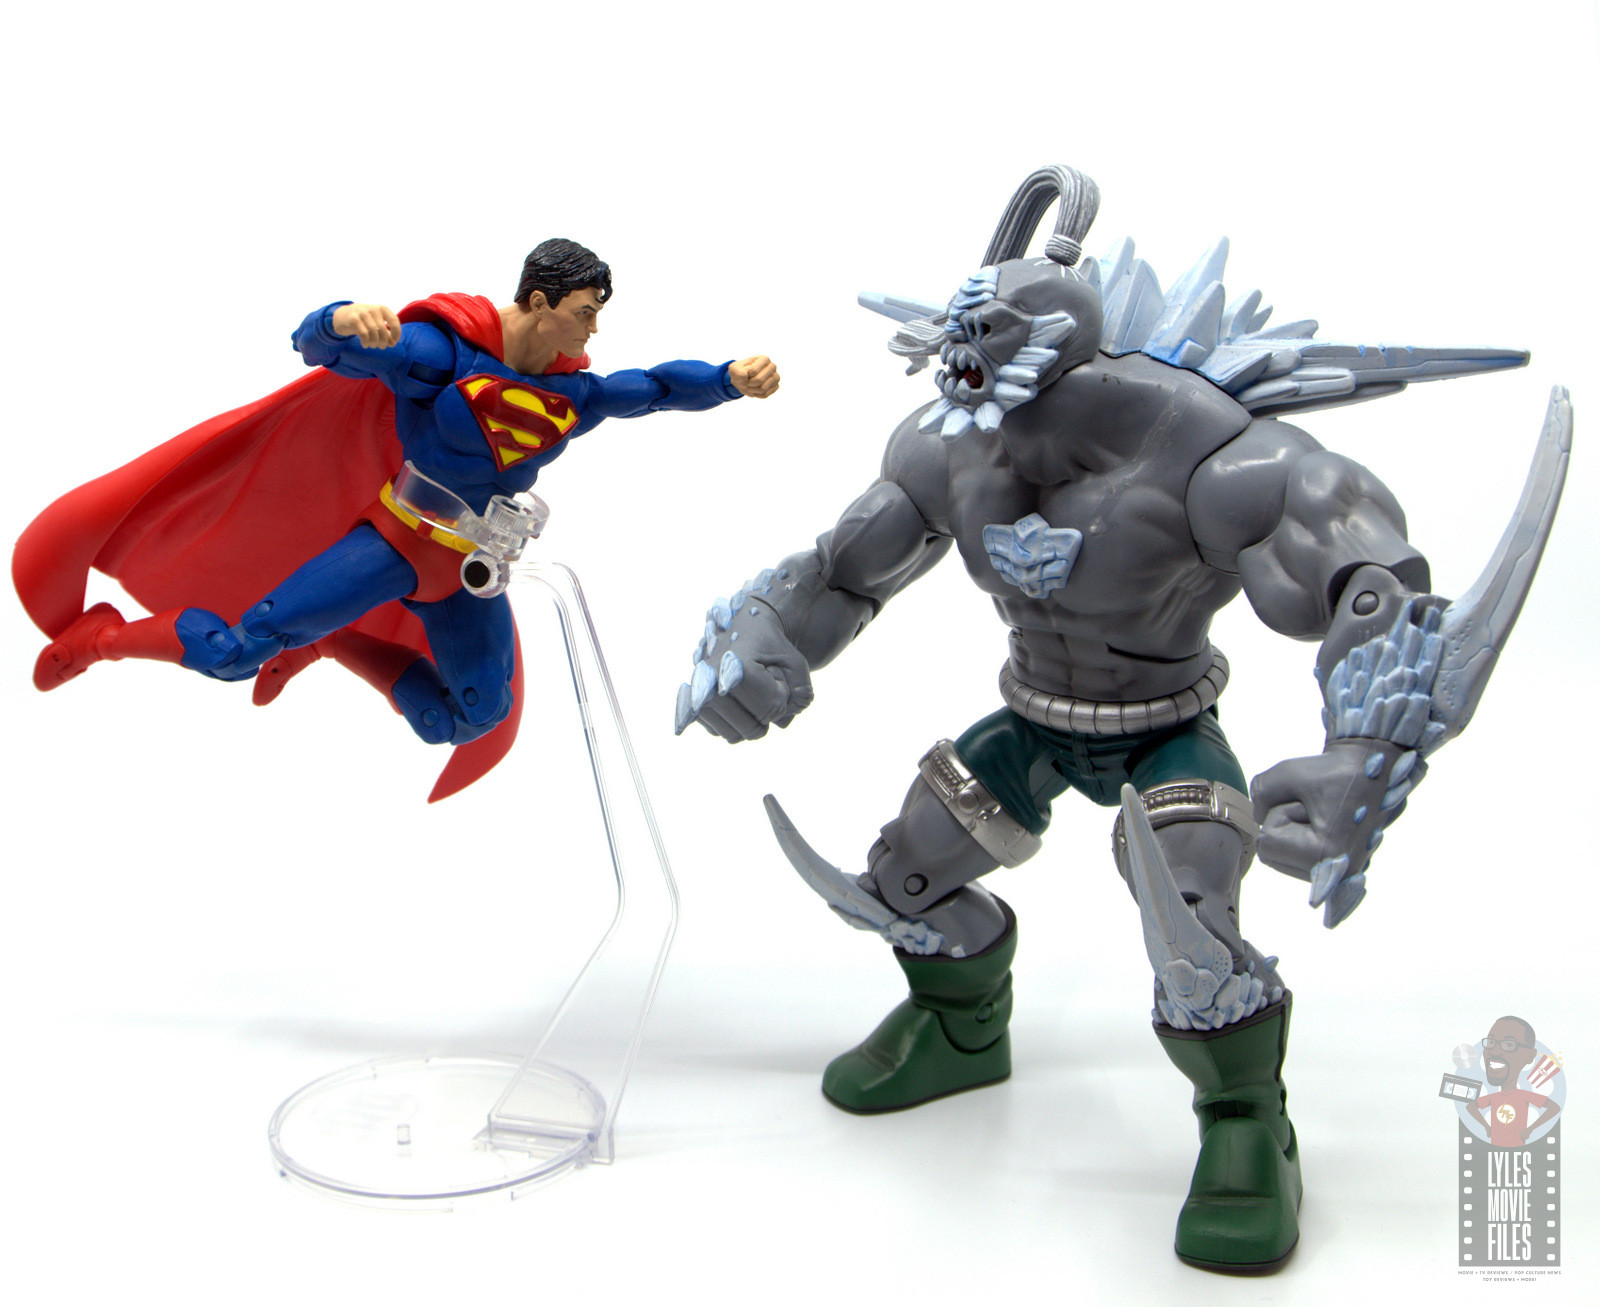 Mcfarlane Toys Dc Multiverse Superman Figure Review Flying